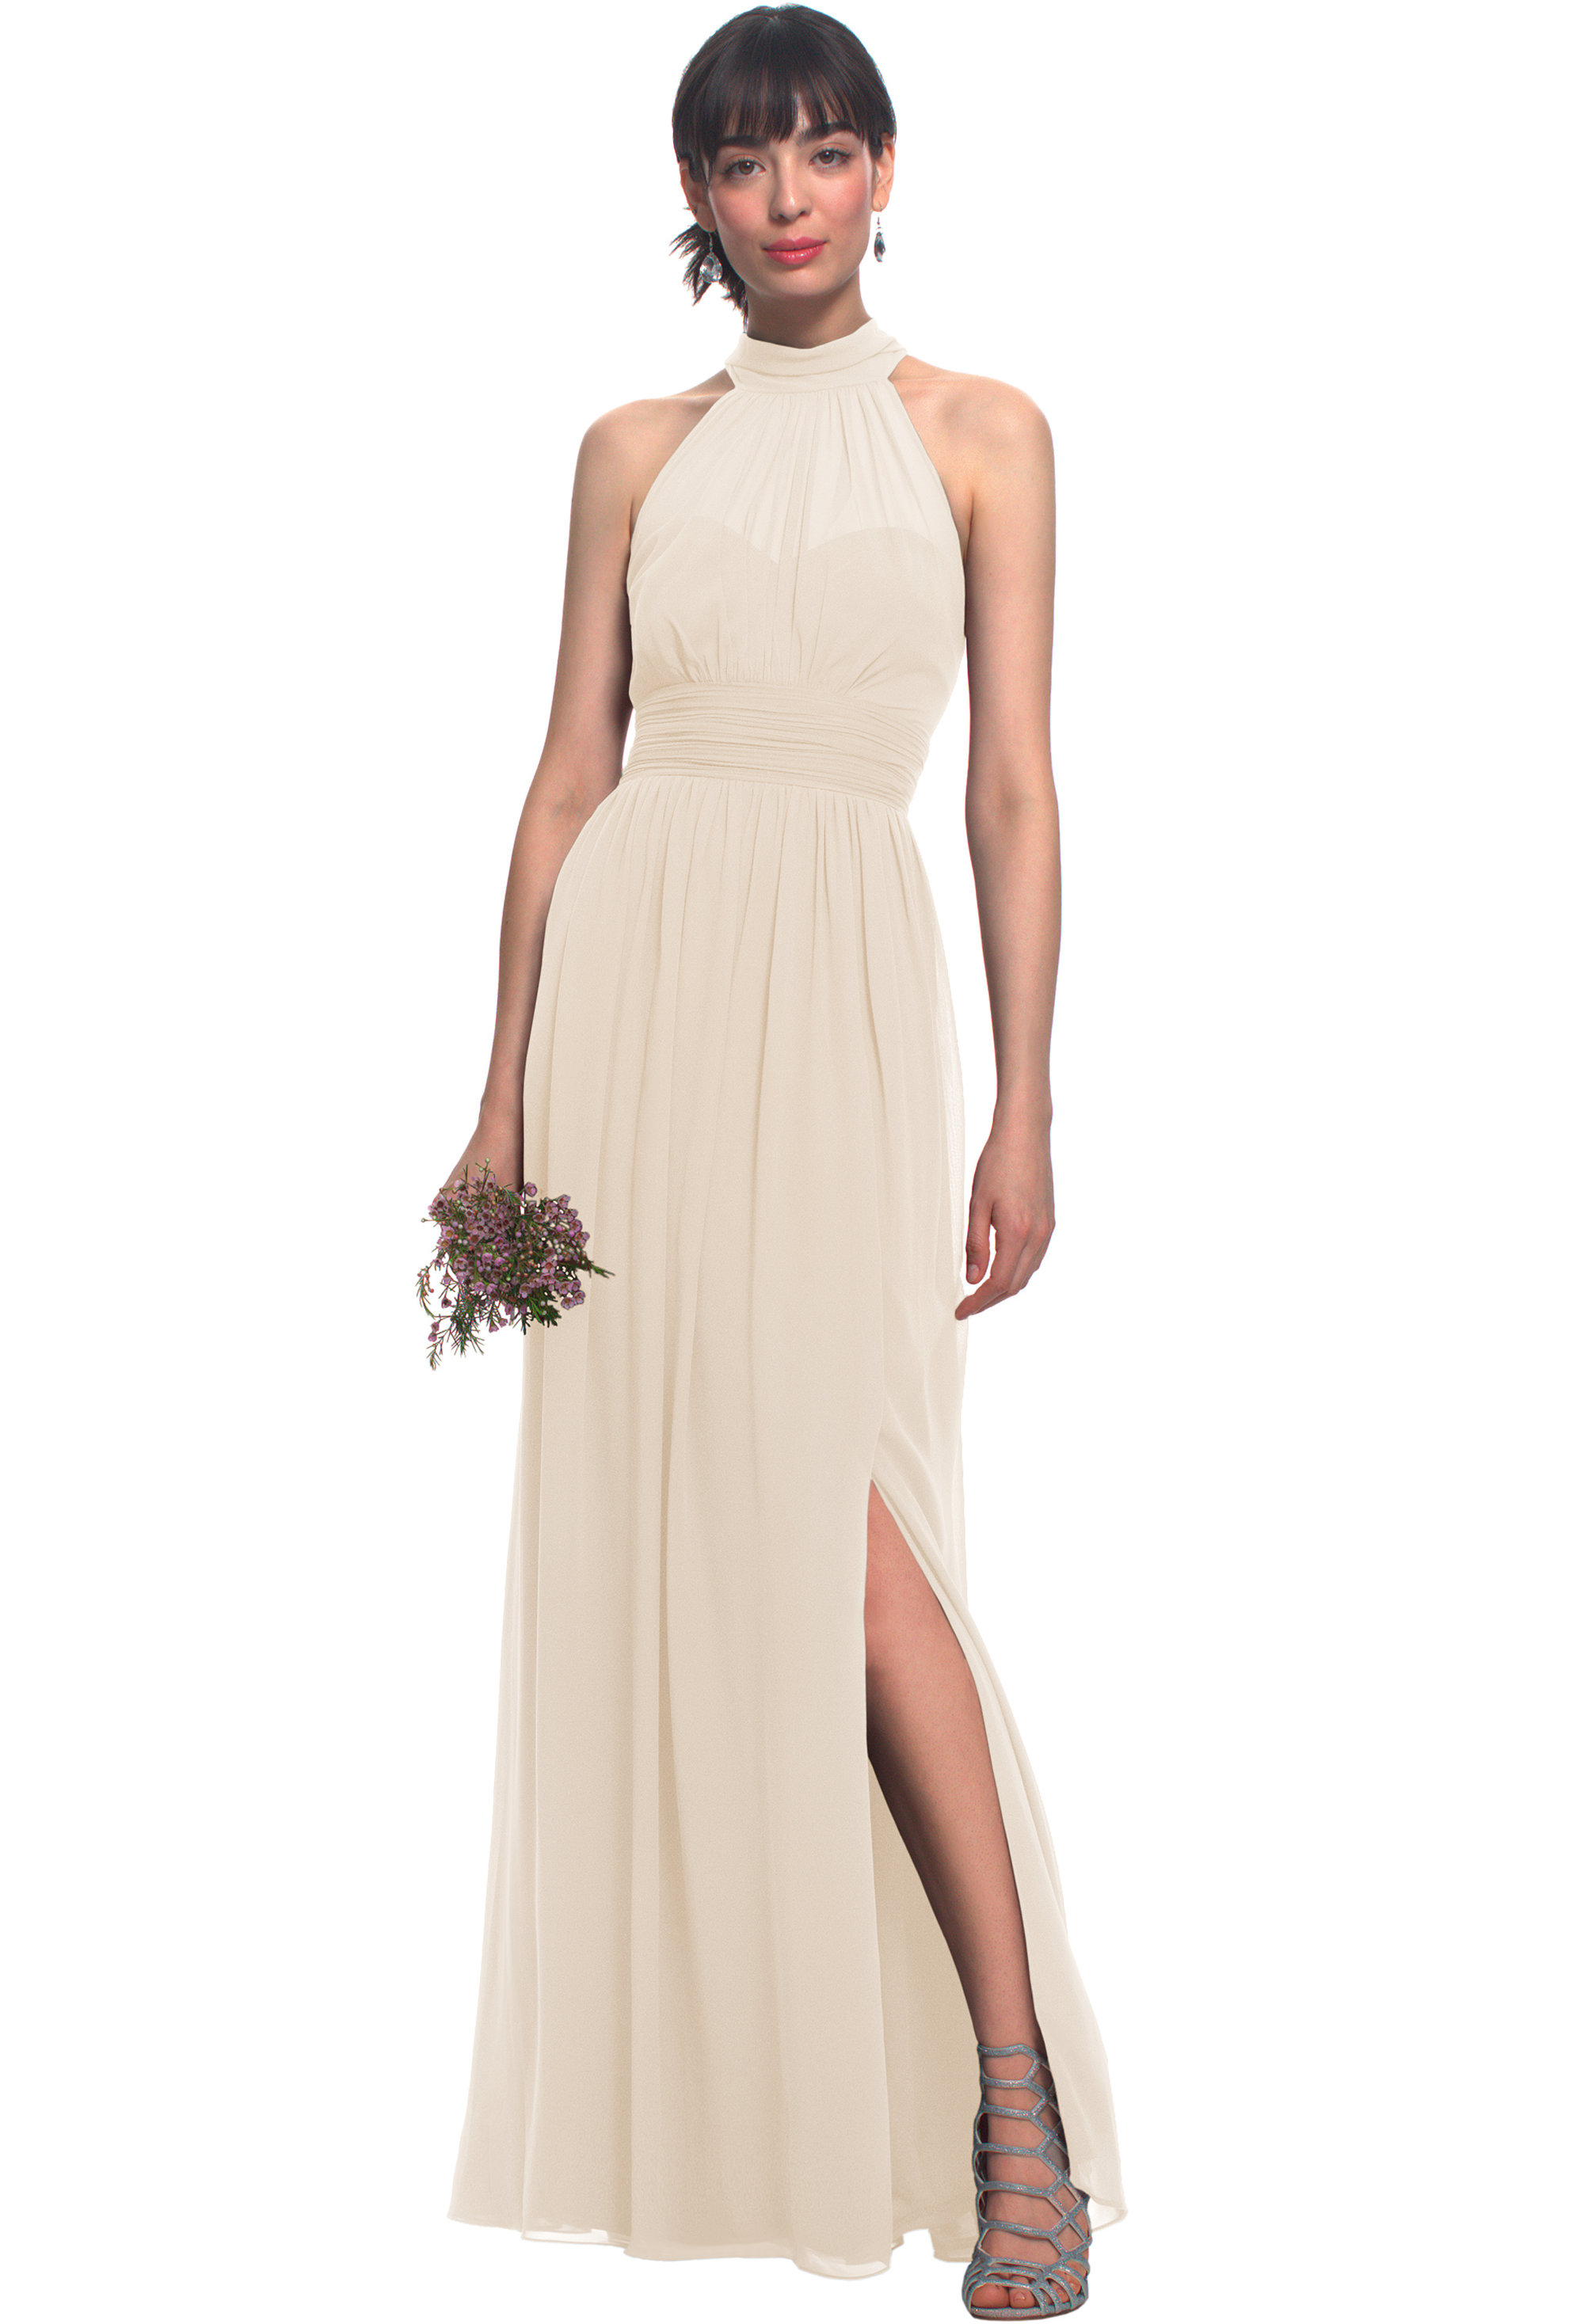 Bill Levkoff CHAMPAGNE Chiffon Illusion Side Slit gown, $170.00 Front